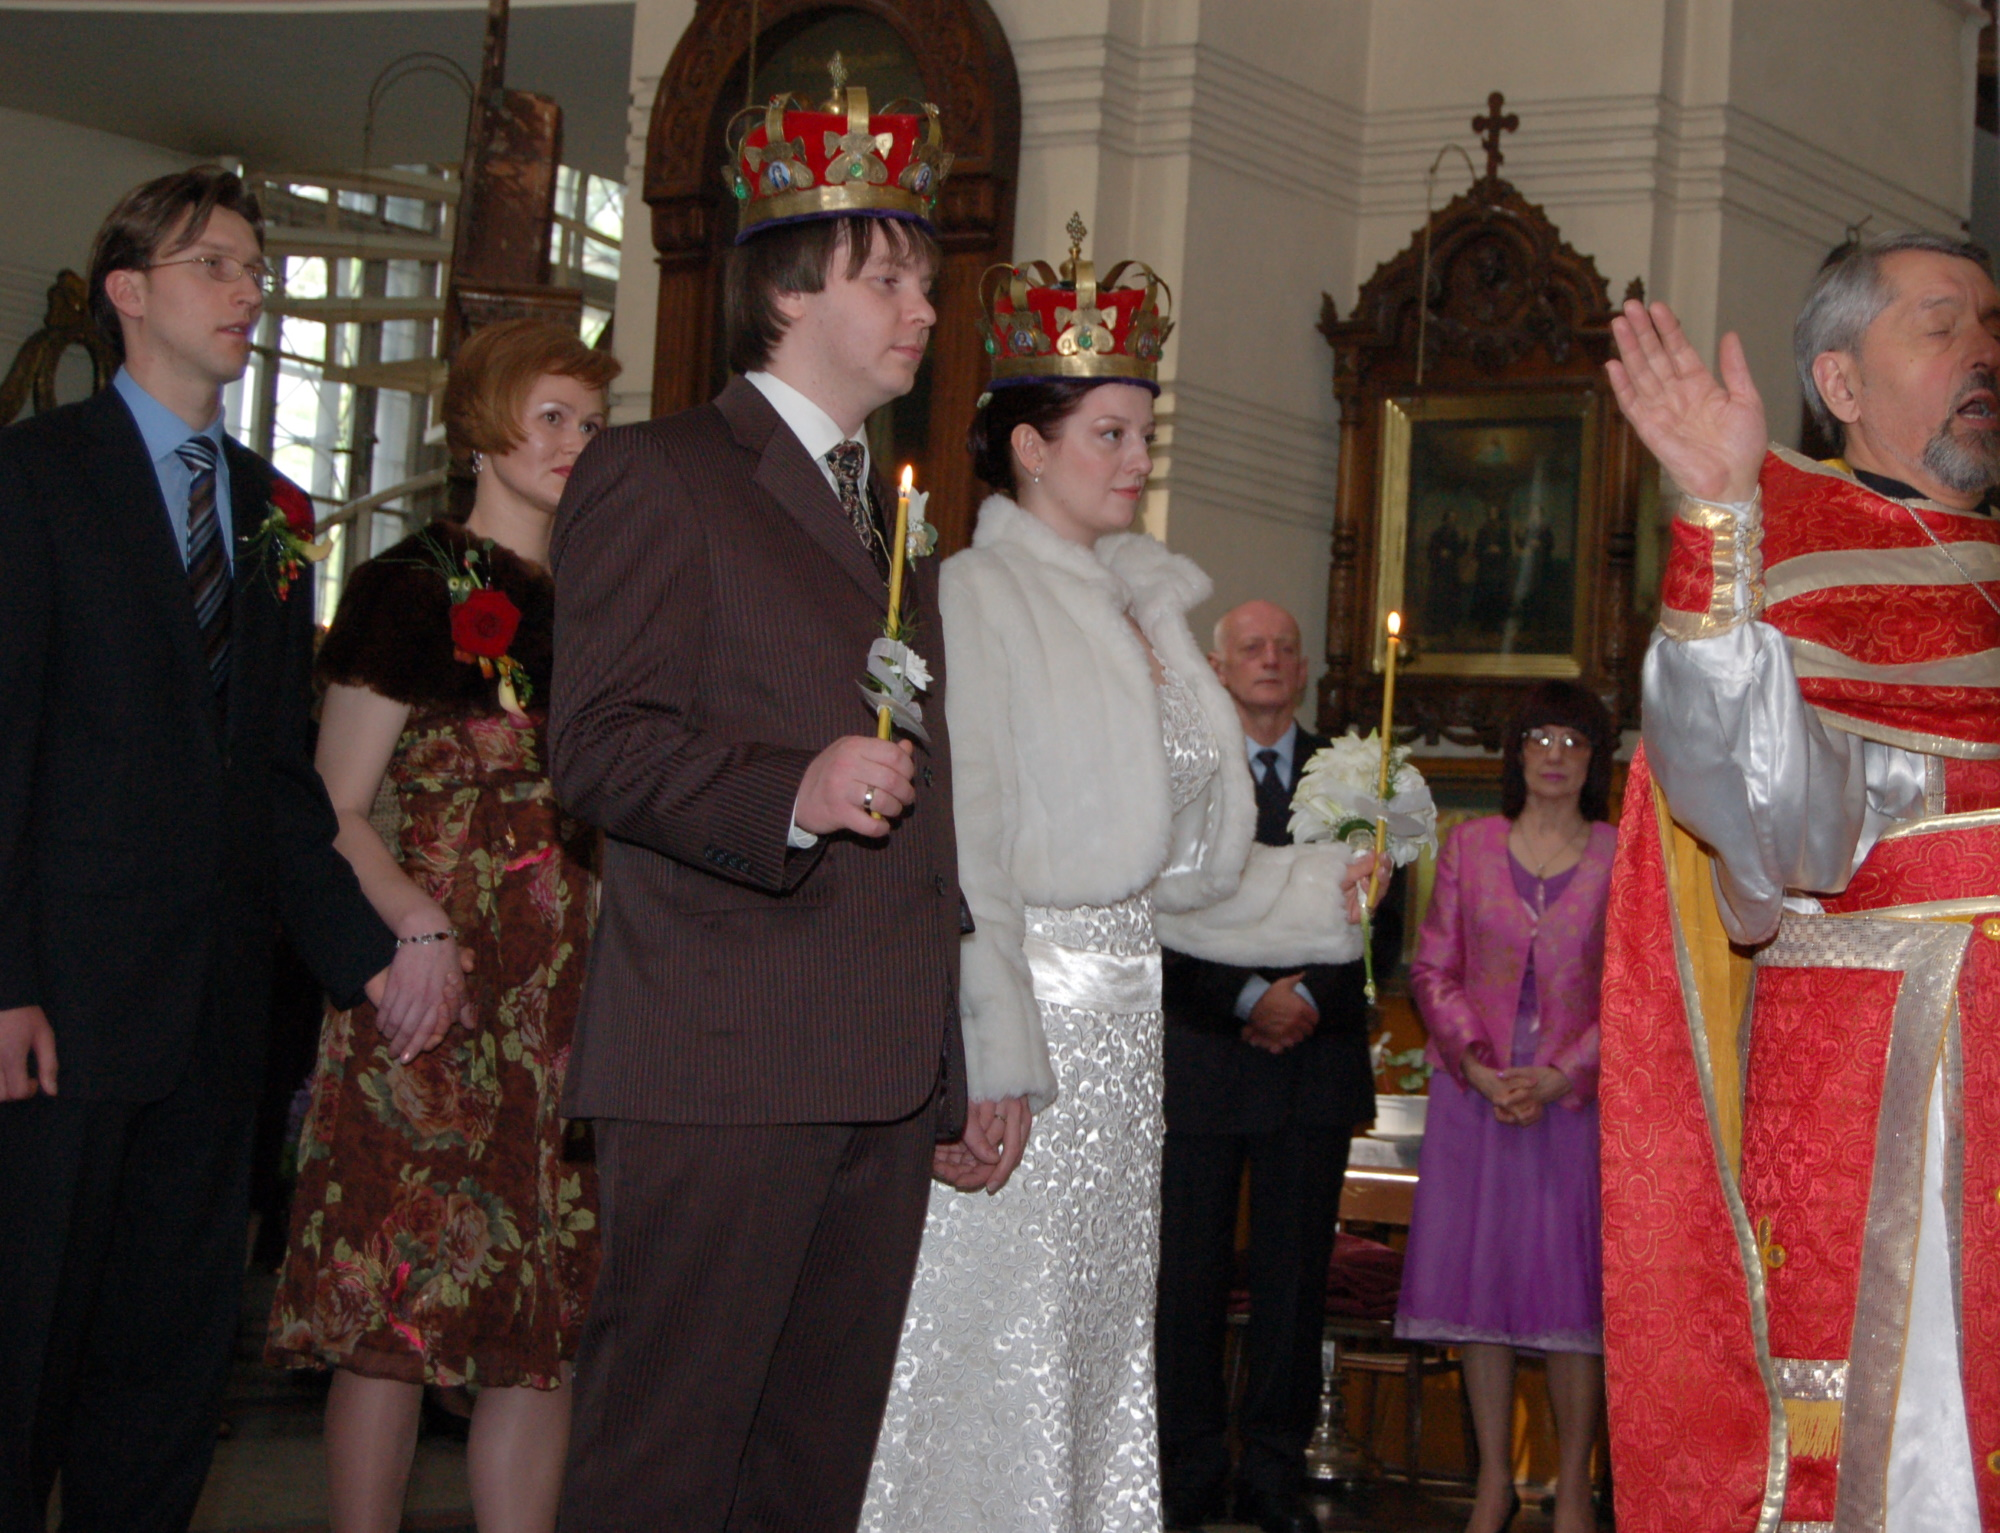 The bride and groom have been crowned